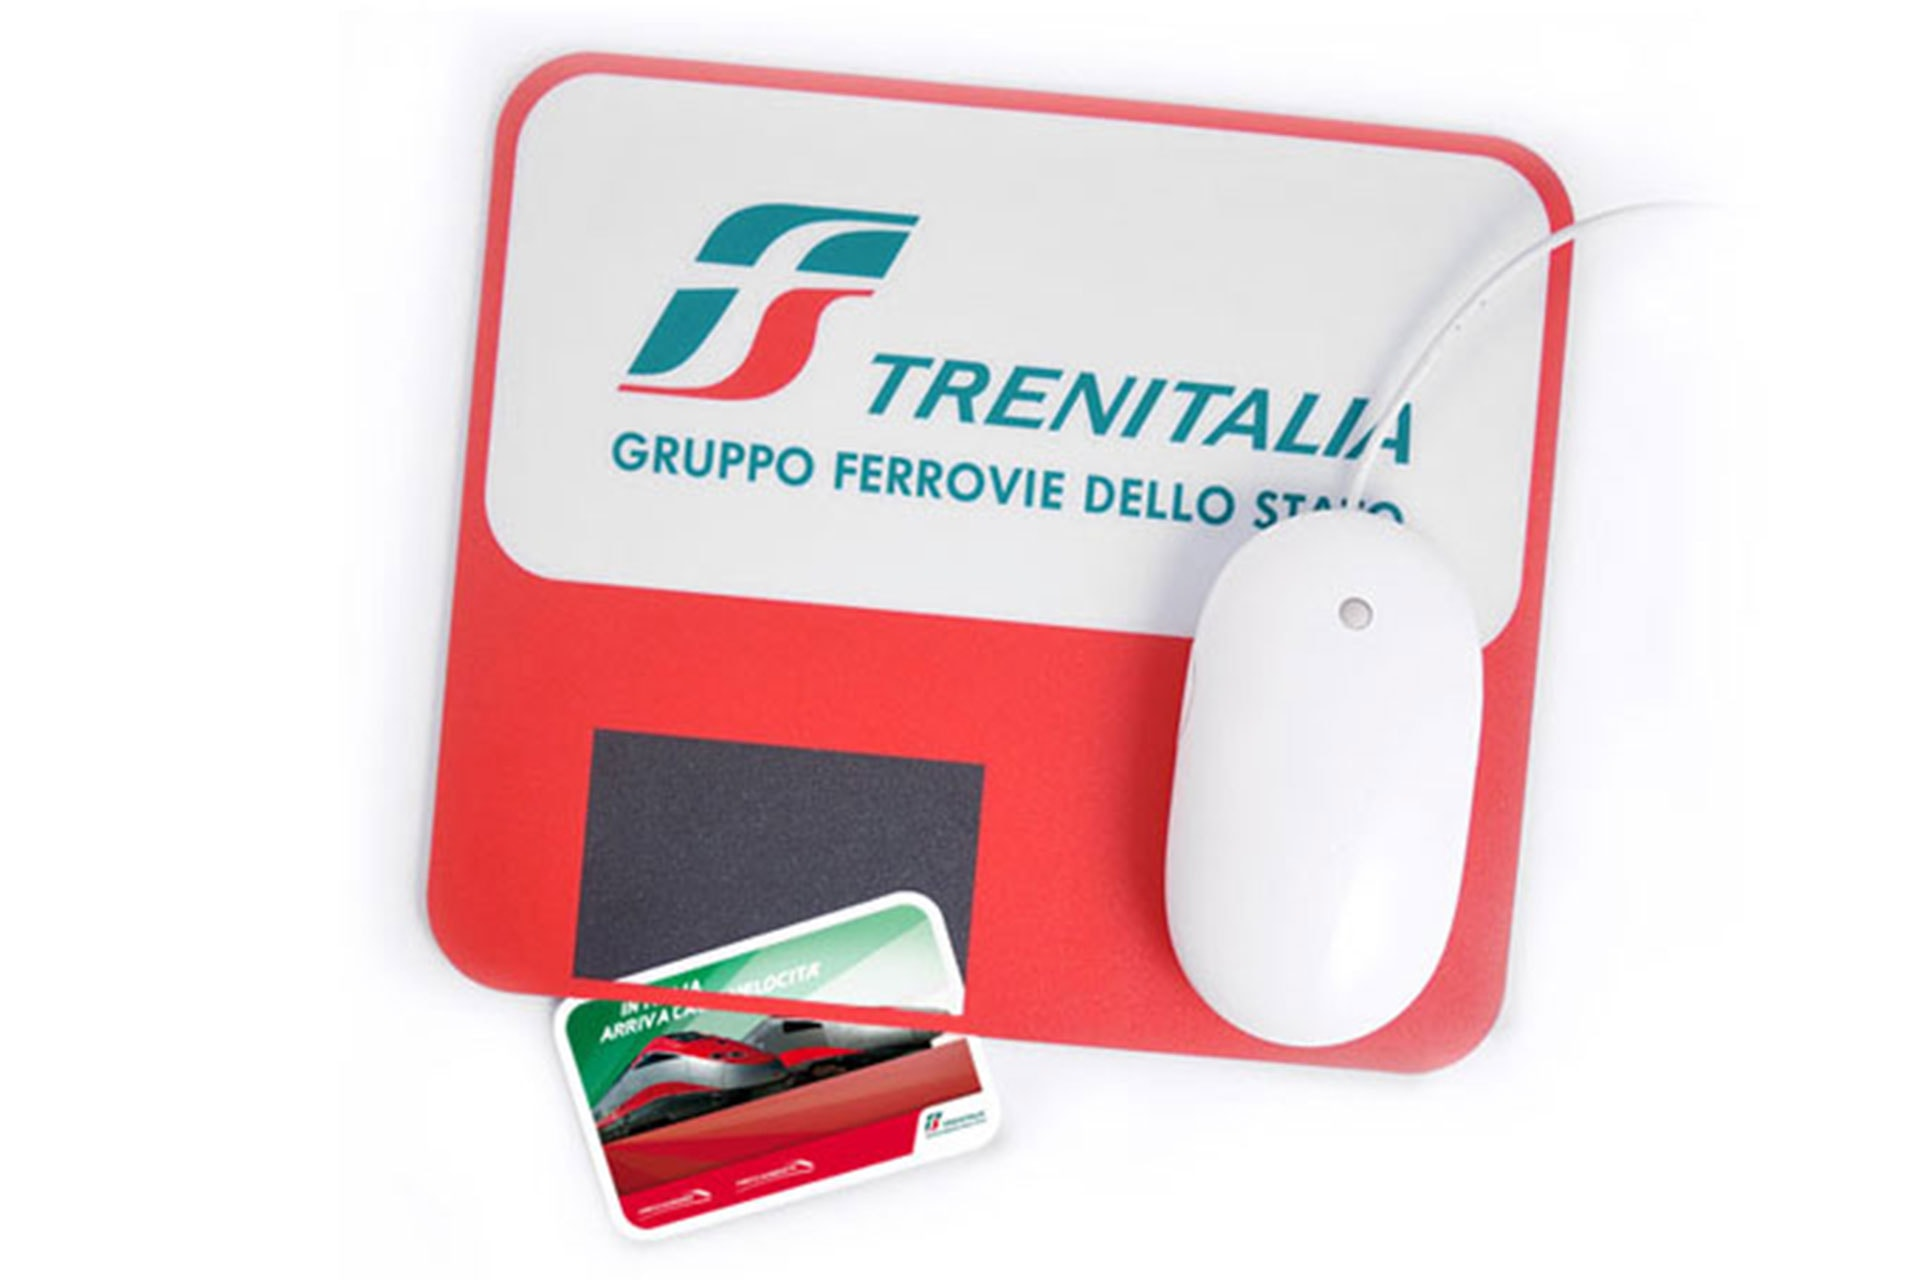 Tappetino mouse con tasca porta card